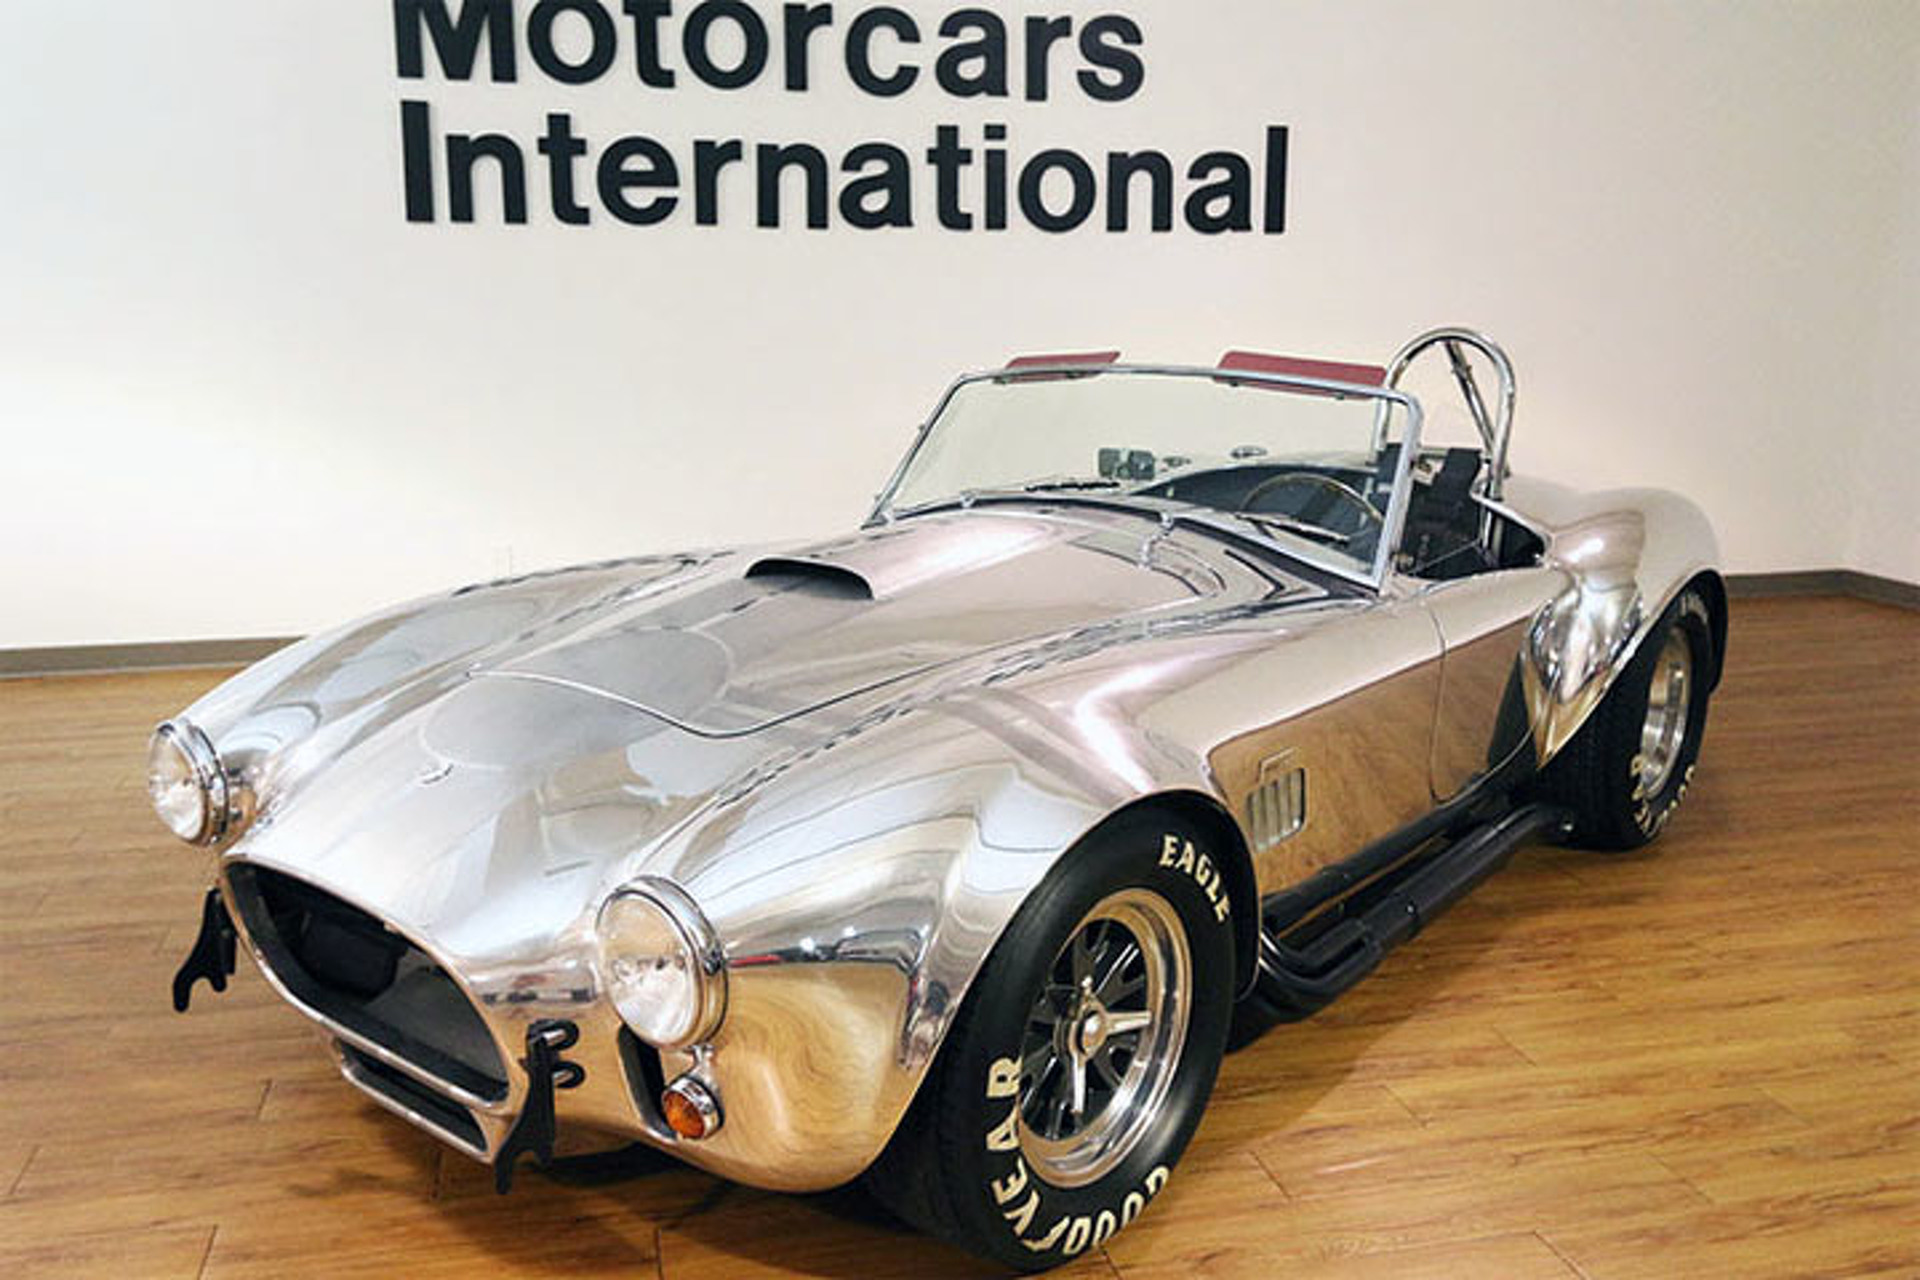 Here's Your Chance to Own a Mint Shelby Cobra Replica